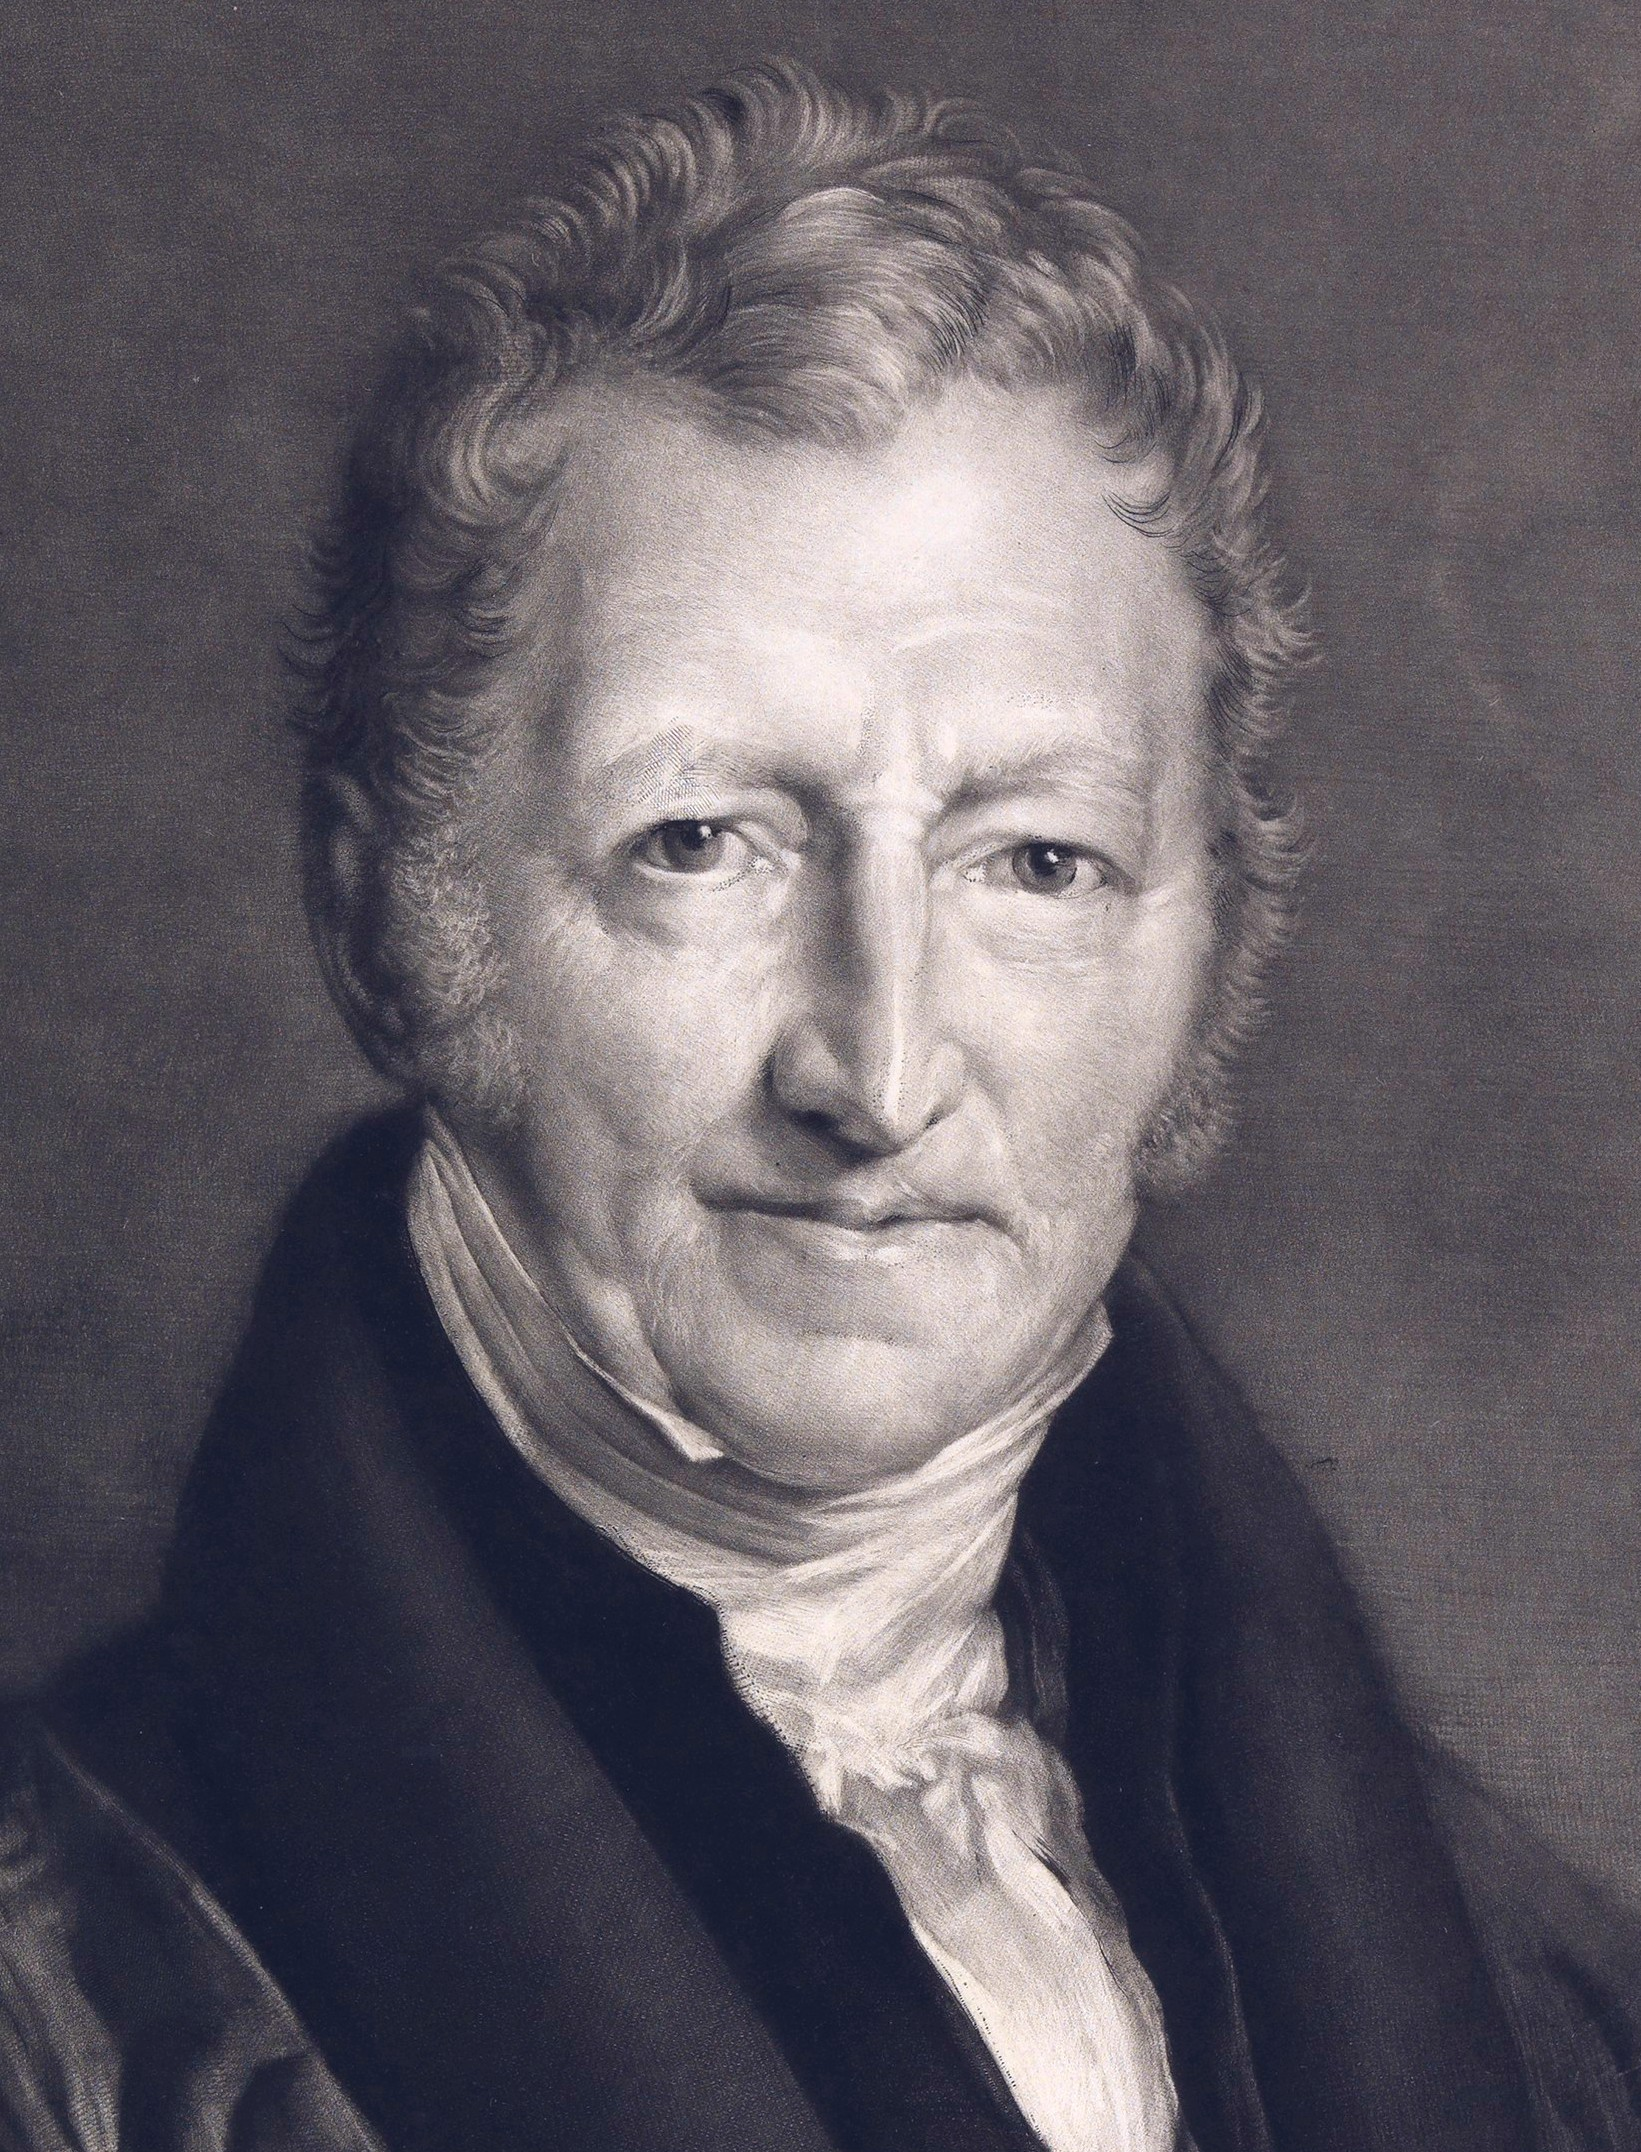 Thomas Malthus, father of sustainability, and population theory